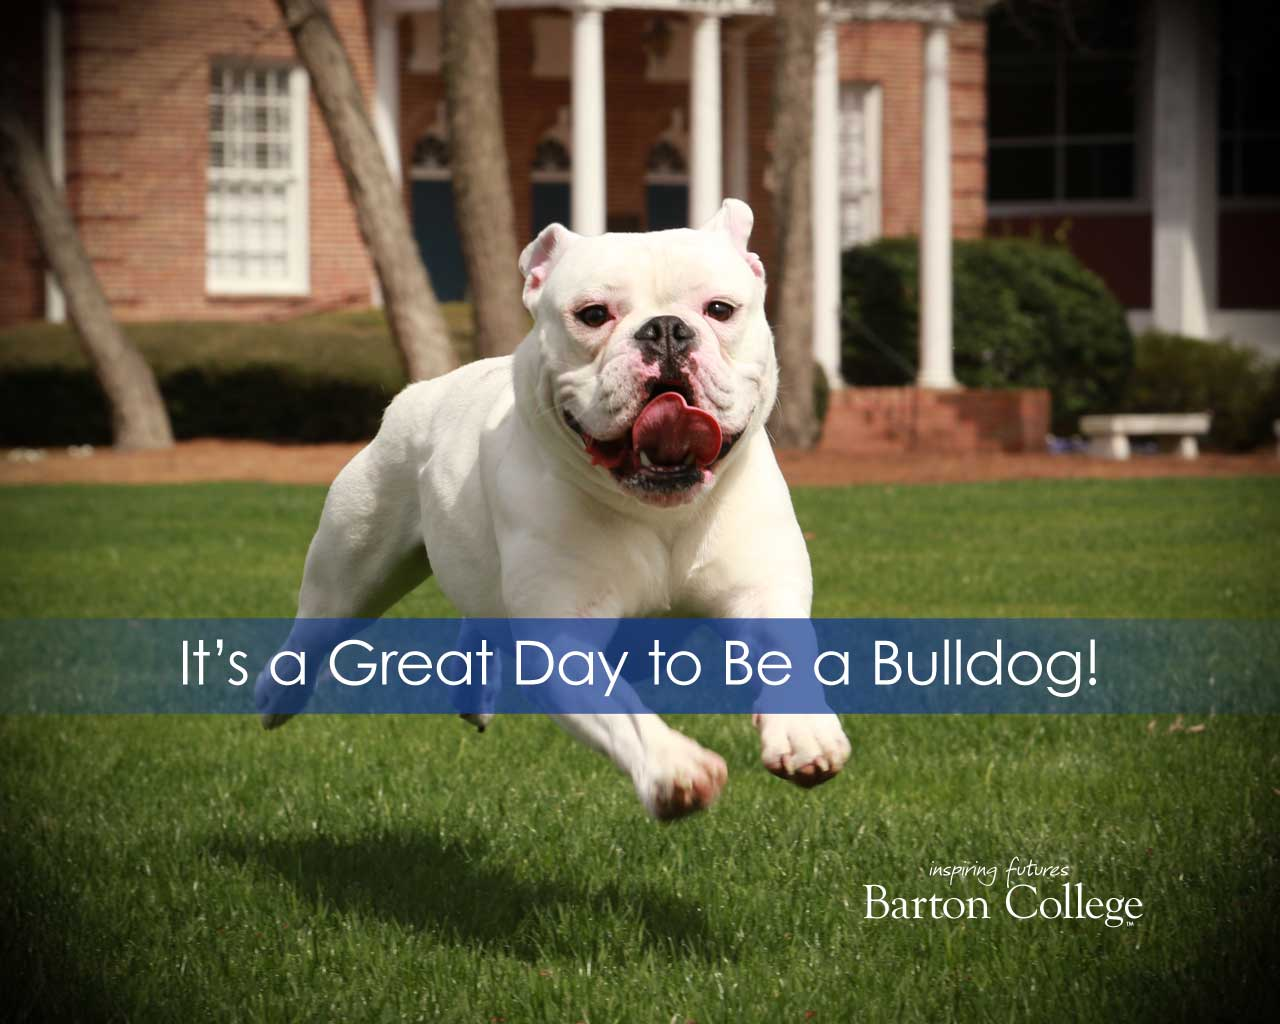 Bulldog running across campus